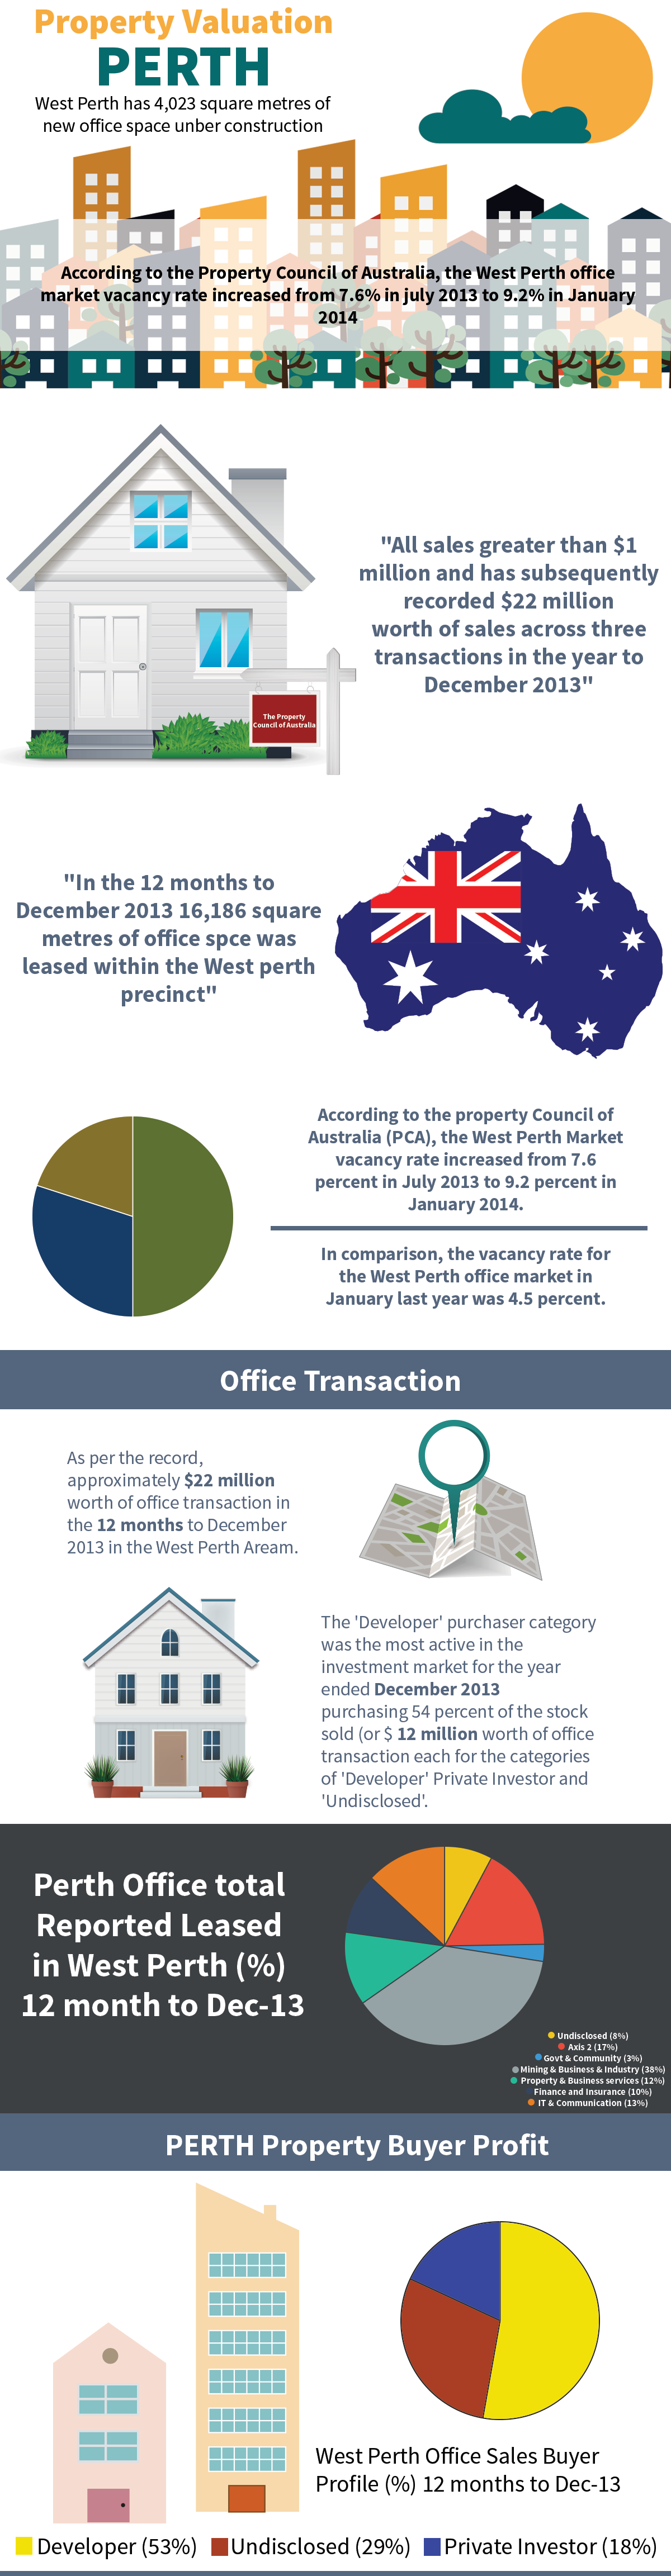 Perth Property Valuation